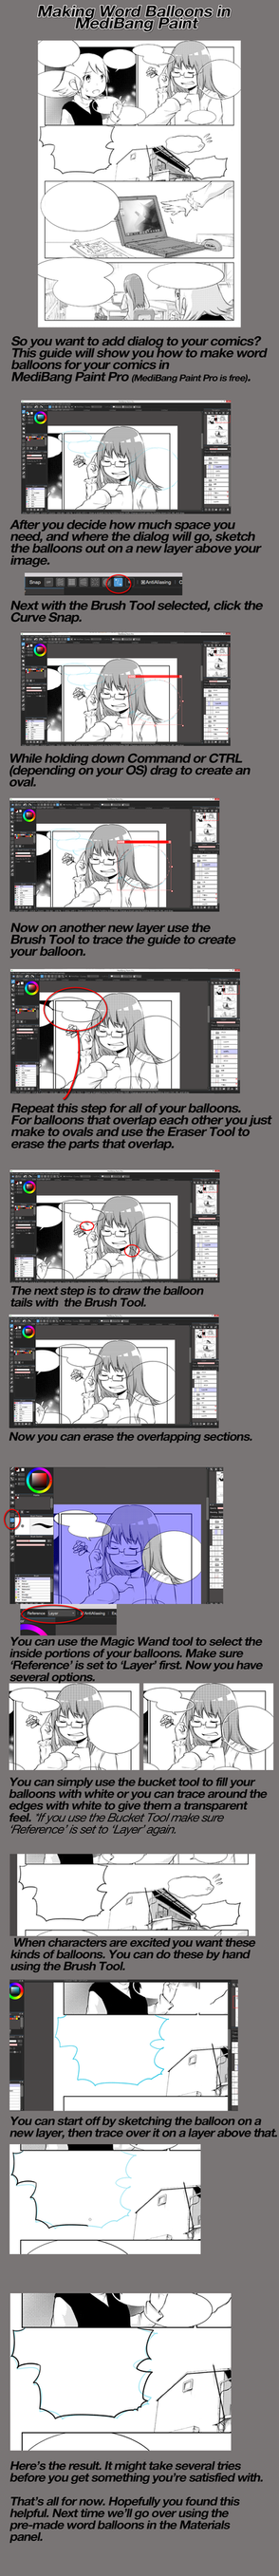 How to make word balloons for your comics by medibangadmin